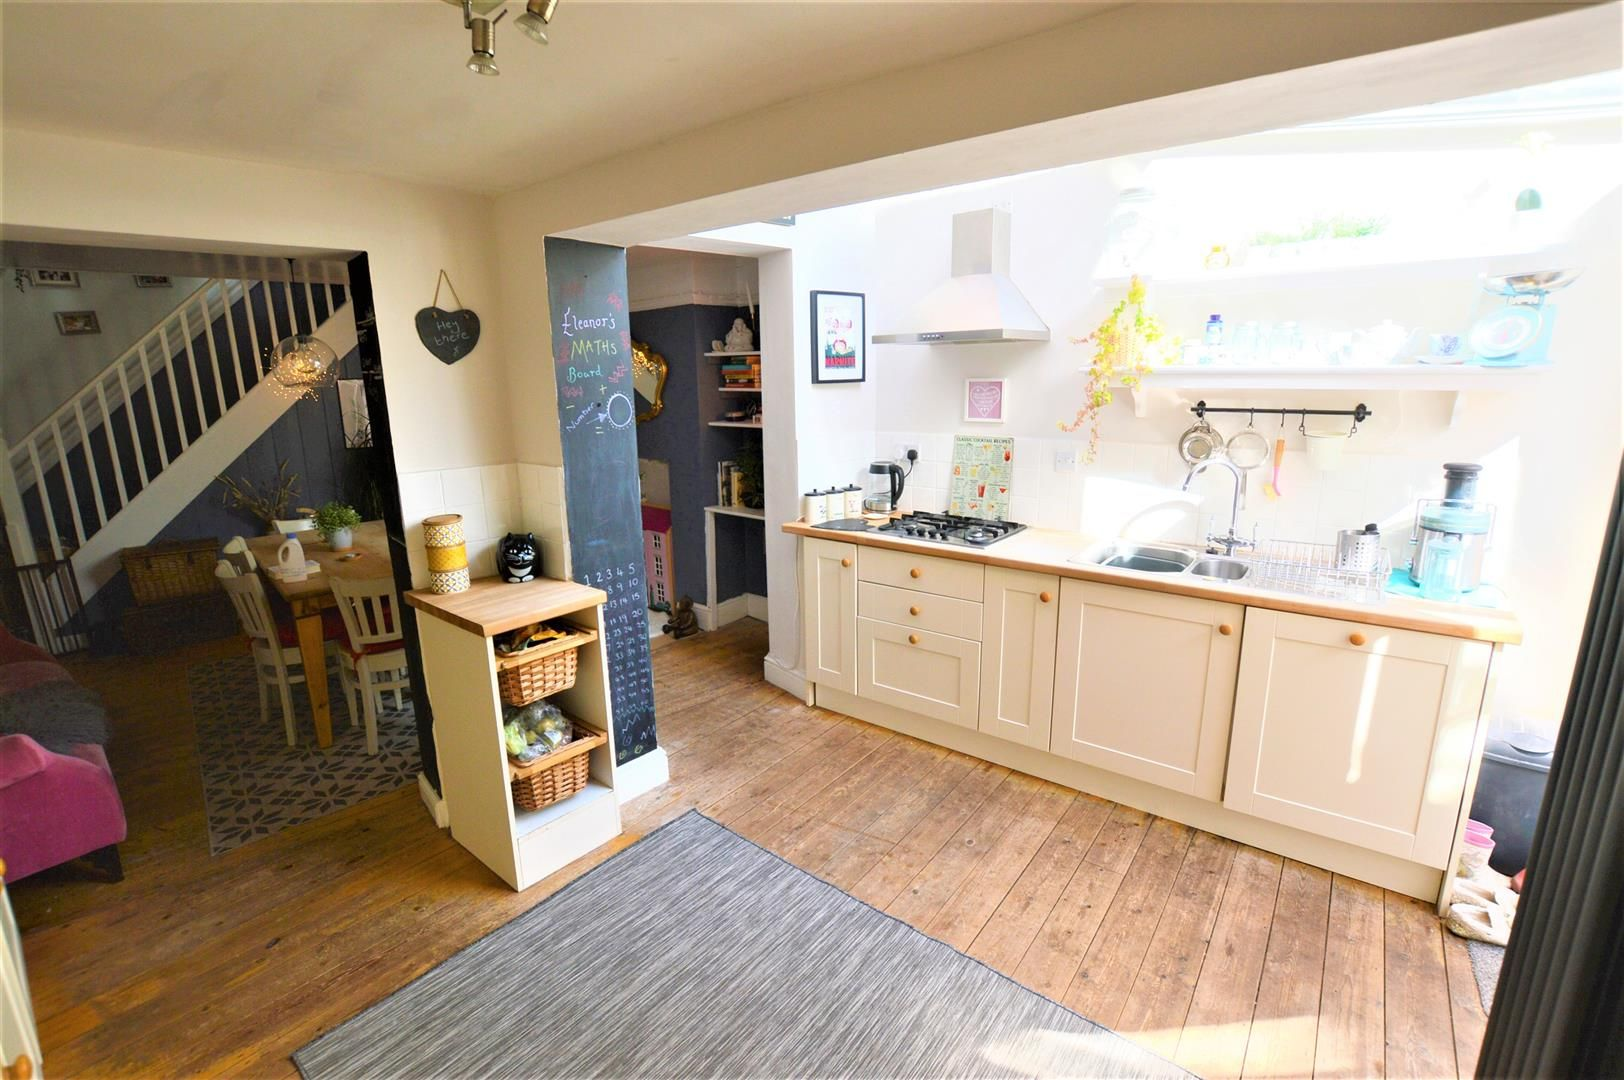 3 bed terraced for sale in Leominster 5